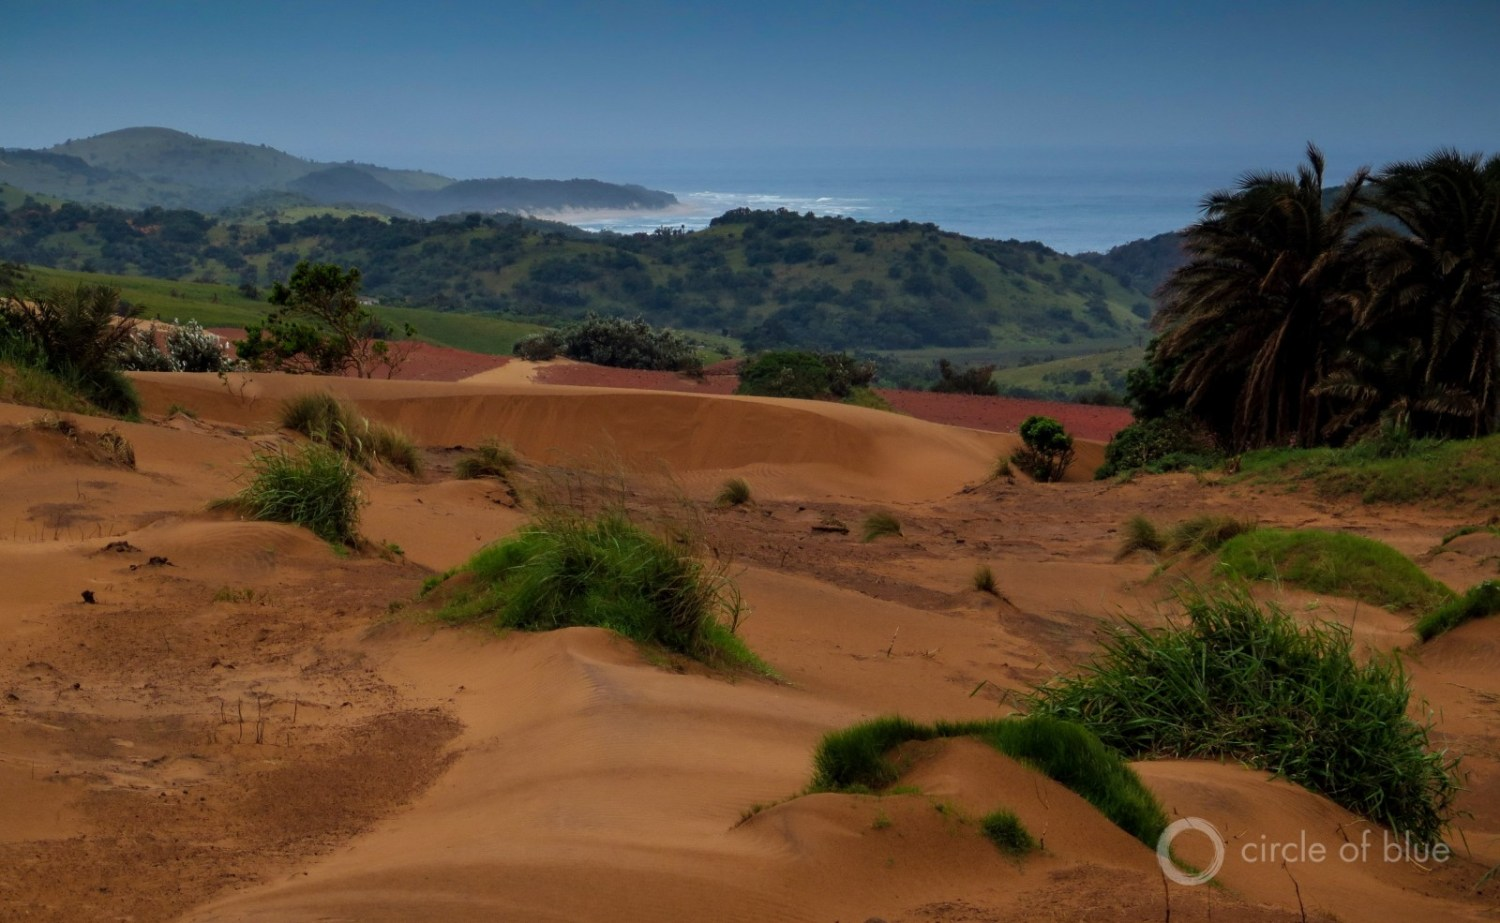 Mineral Commodities Ltd., an Australian developer, proposes to take control of 2,867 hectares of Wild Coast beach and dunes (nearly 7,100 acres) to produce 425,000 metric tons of processed titanium sands annually. Photo © Keith Schneider / Circle of Blue